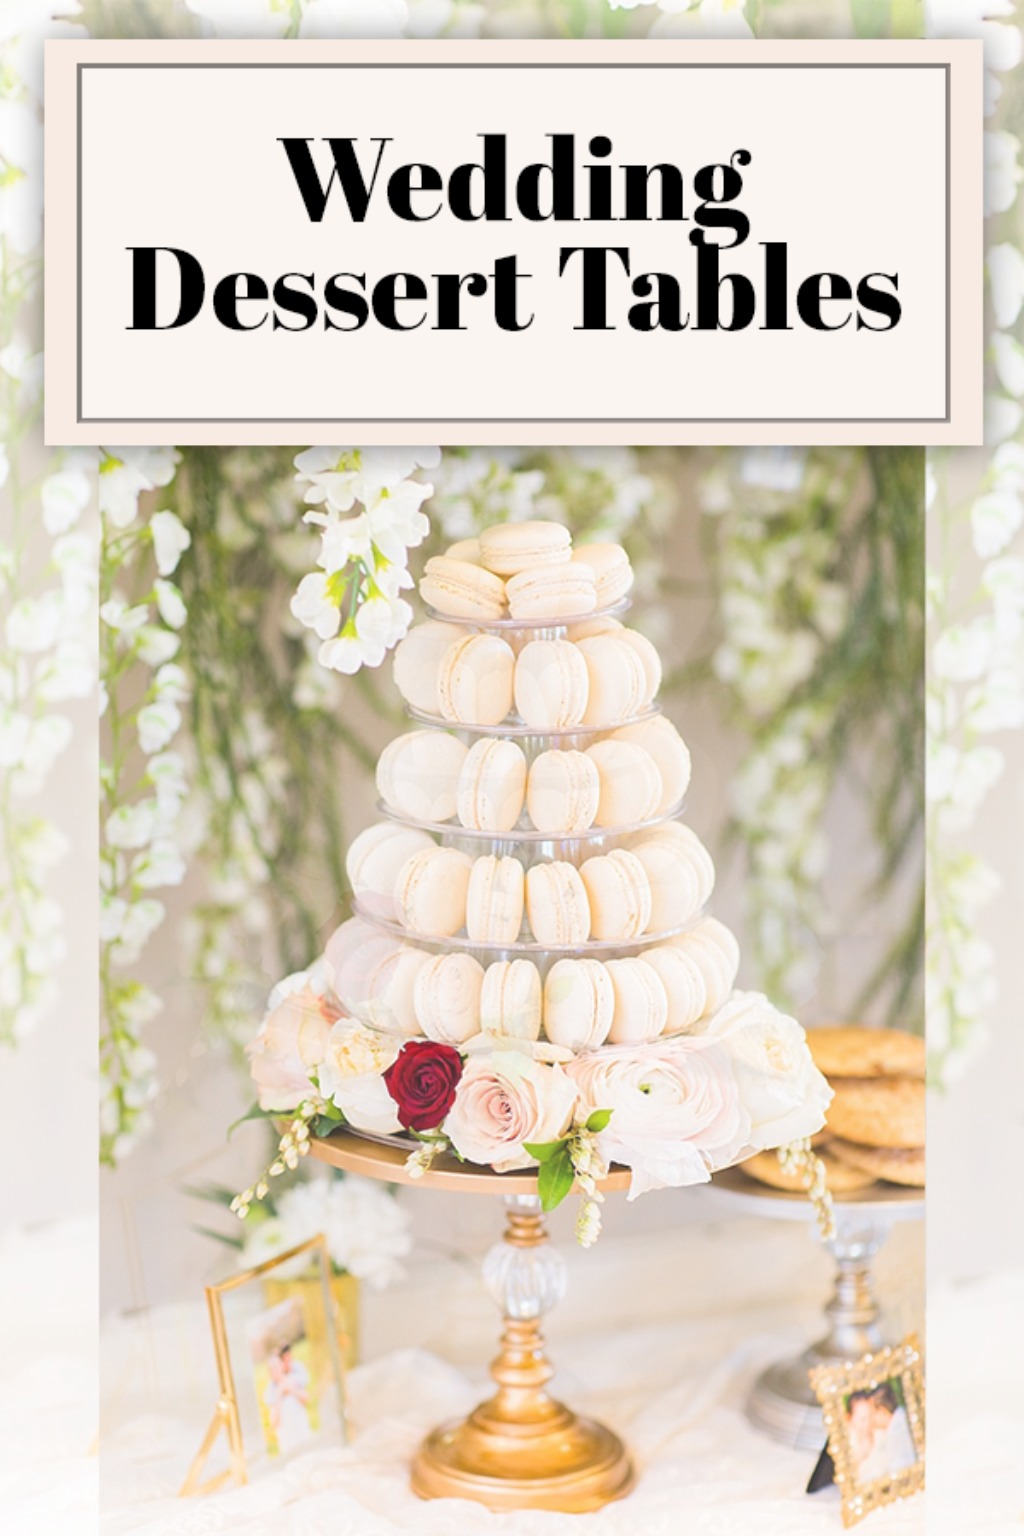 There's no such thing as too much dessert! Couples opting out of the traditional wedding cake are replacing it with a variety of